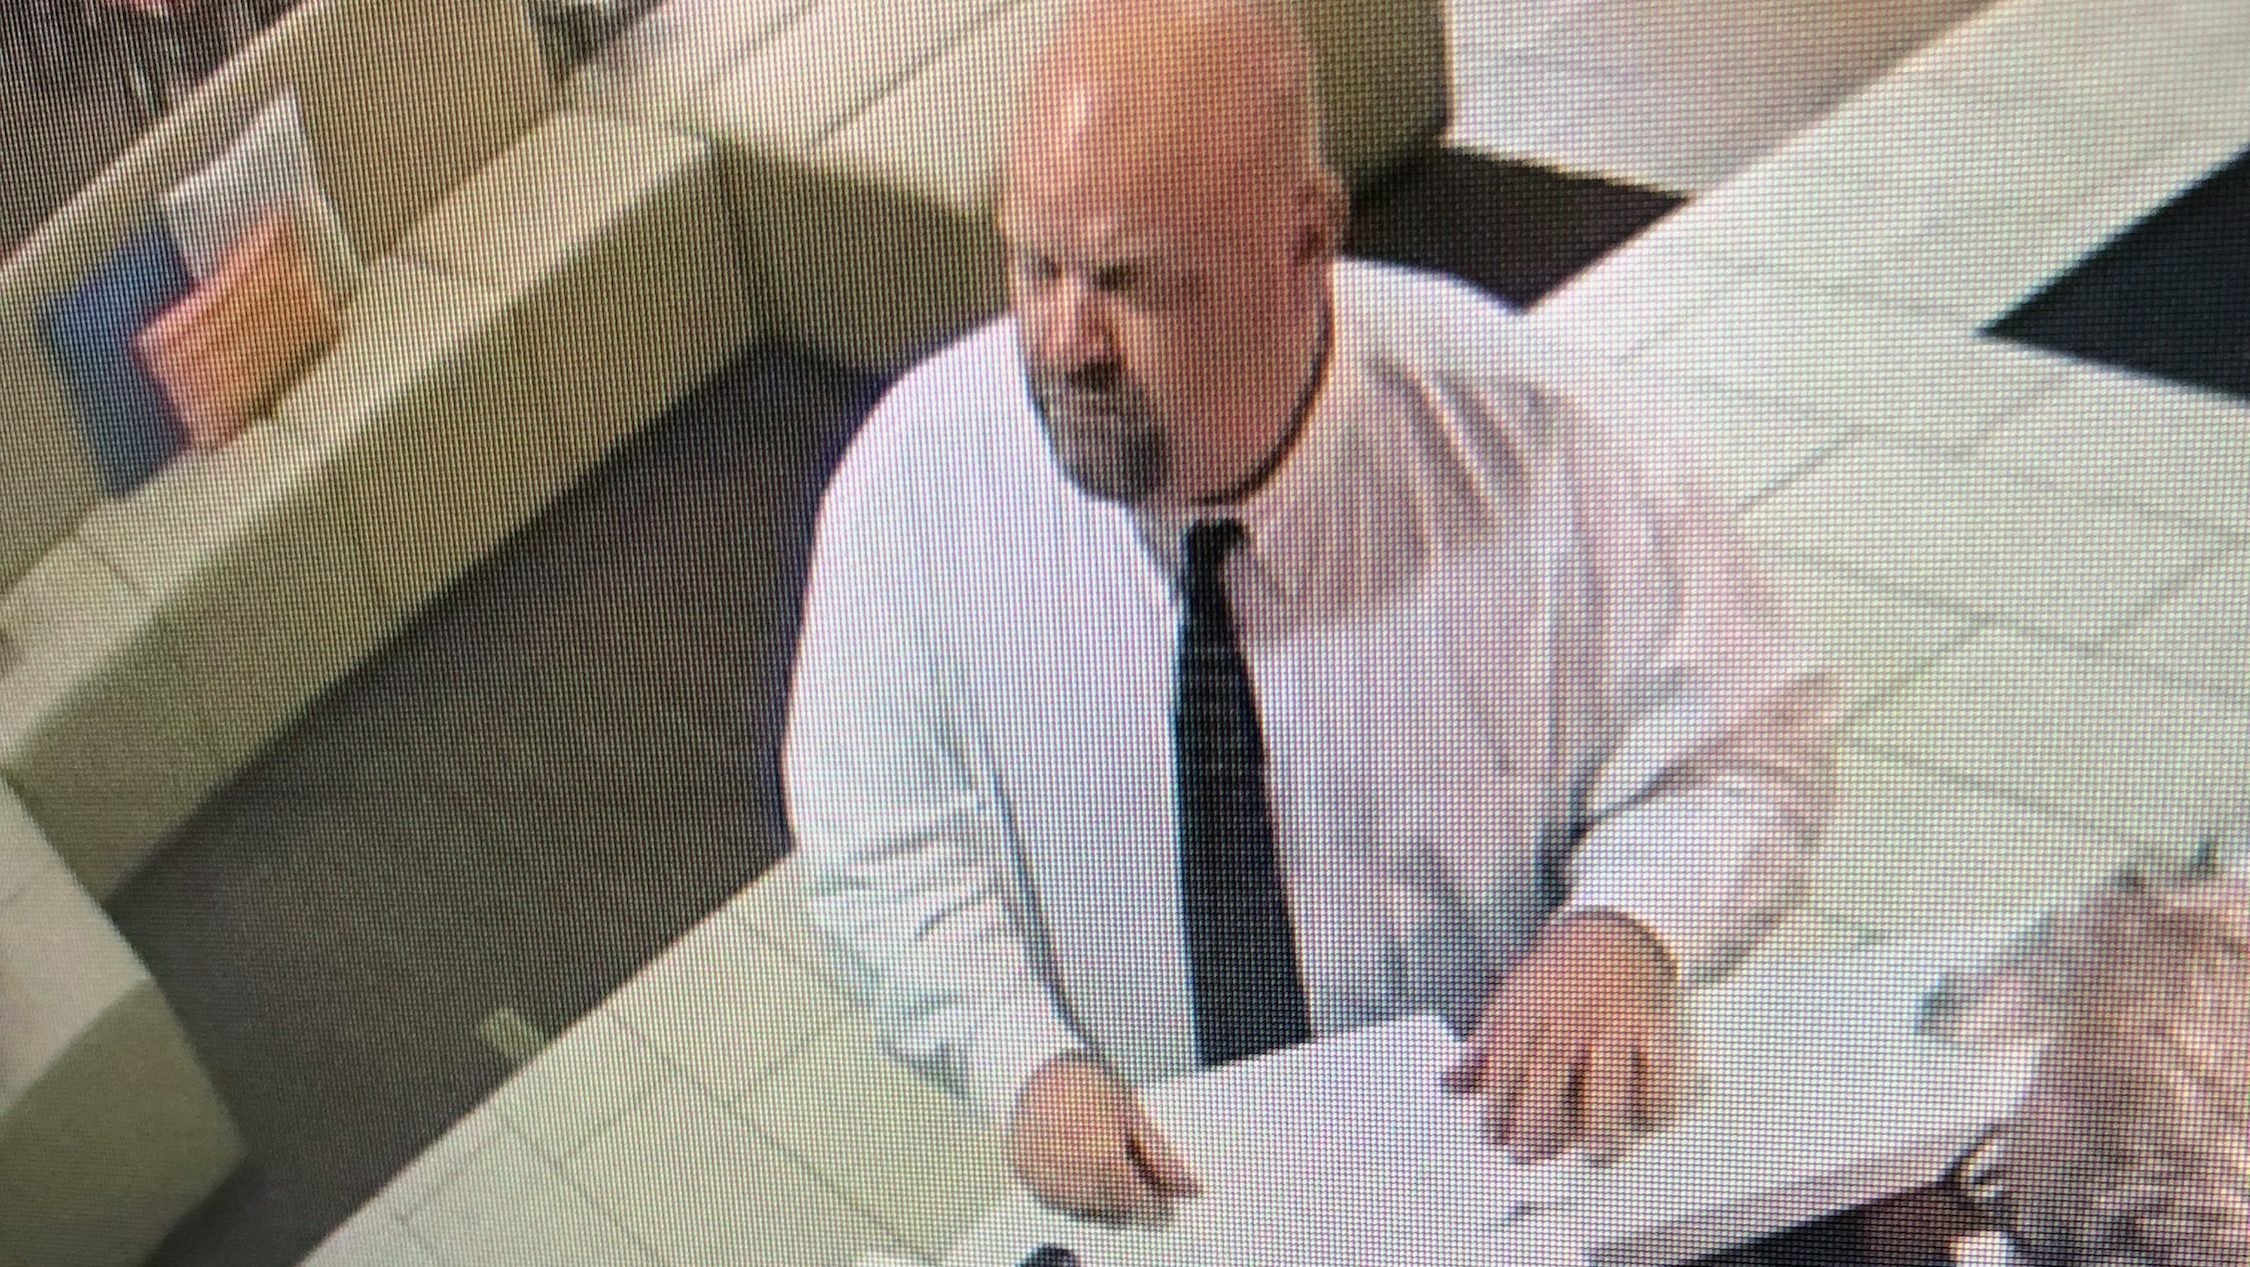 Fugitive Ex-Coach Convicted Of Sex Crimes Spotted In Lexington